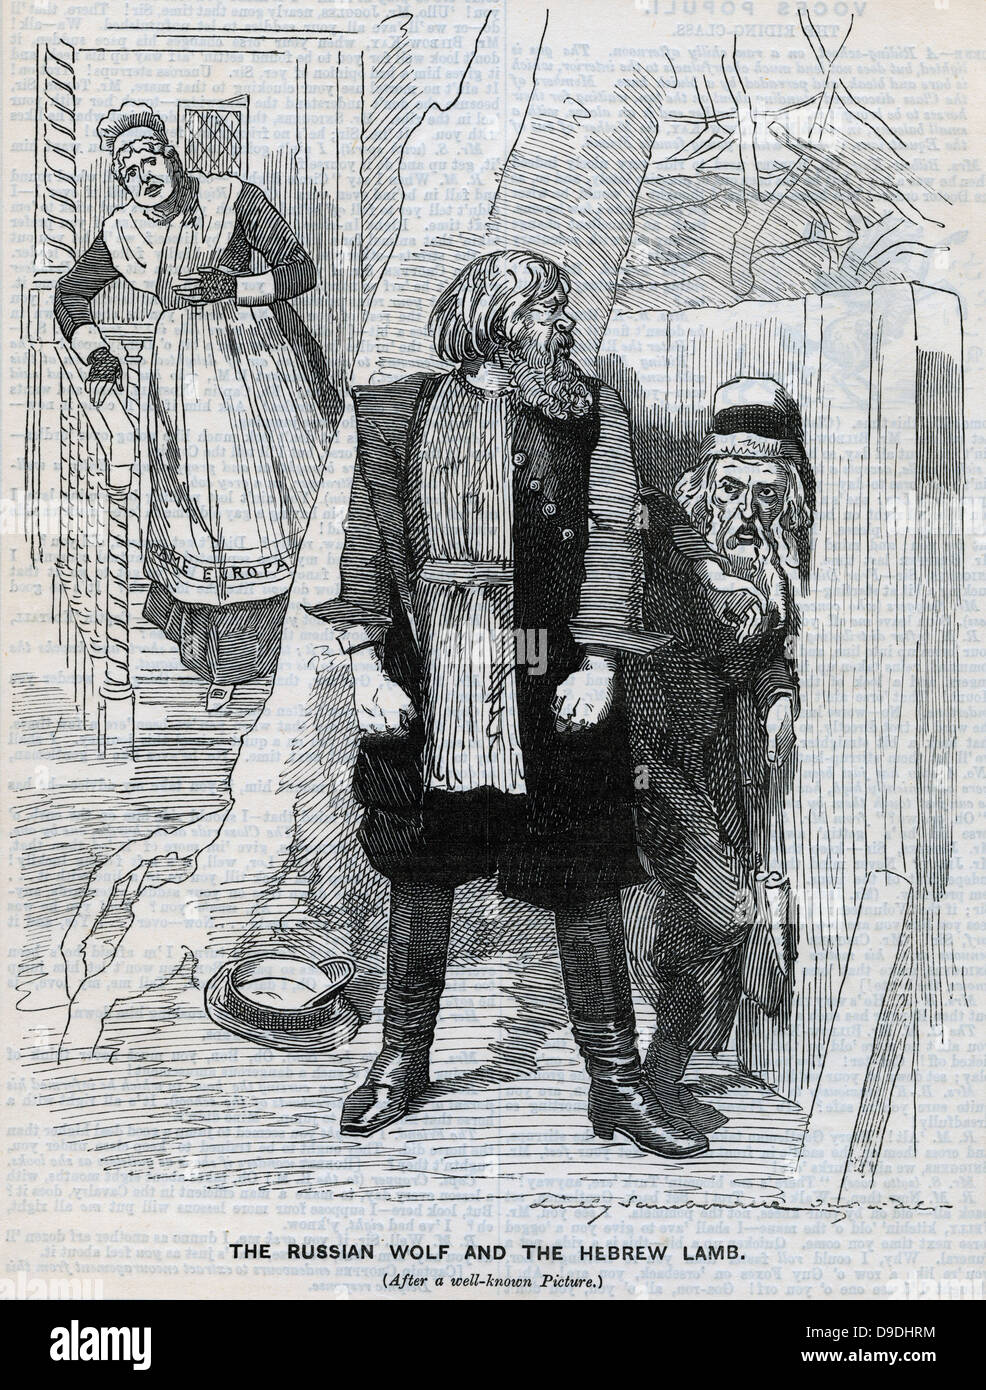 Persecution of Jews in Russia. Cartoon from ''Punch'', London, 1890. - Stock Image